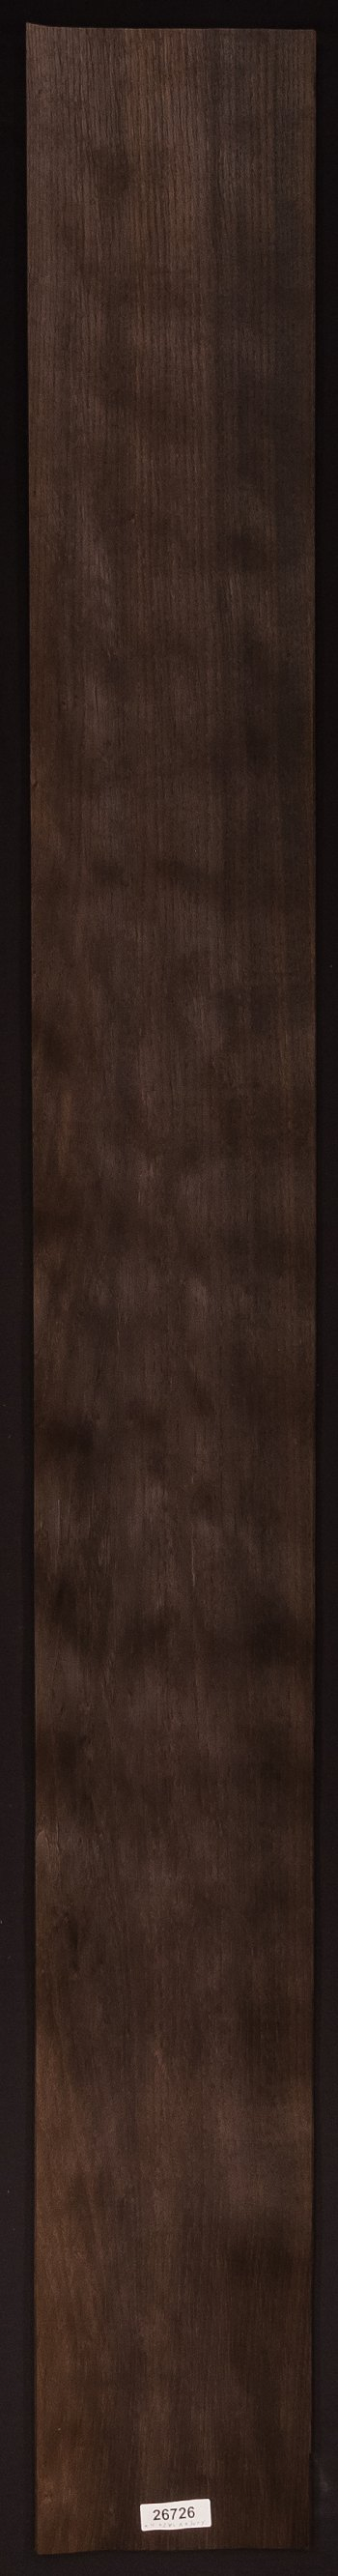 Quartersawn Fumed Oak (White) Veneer Sheet